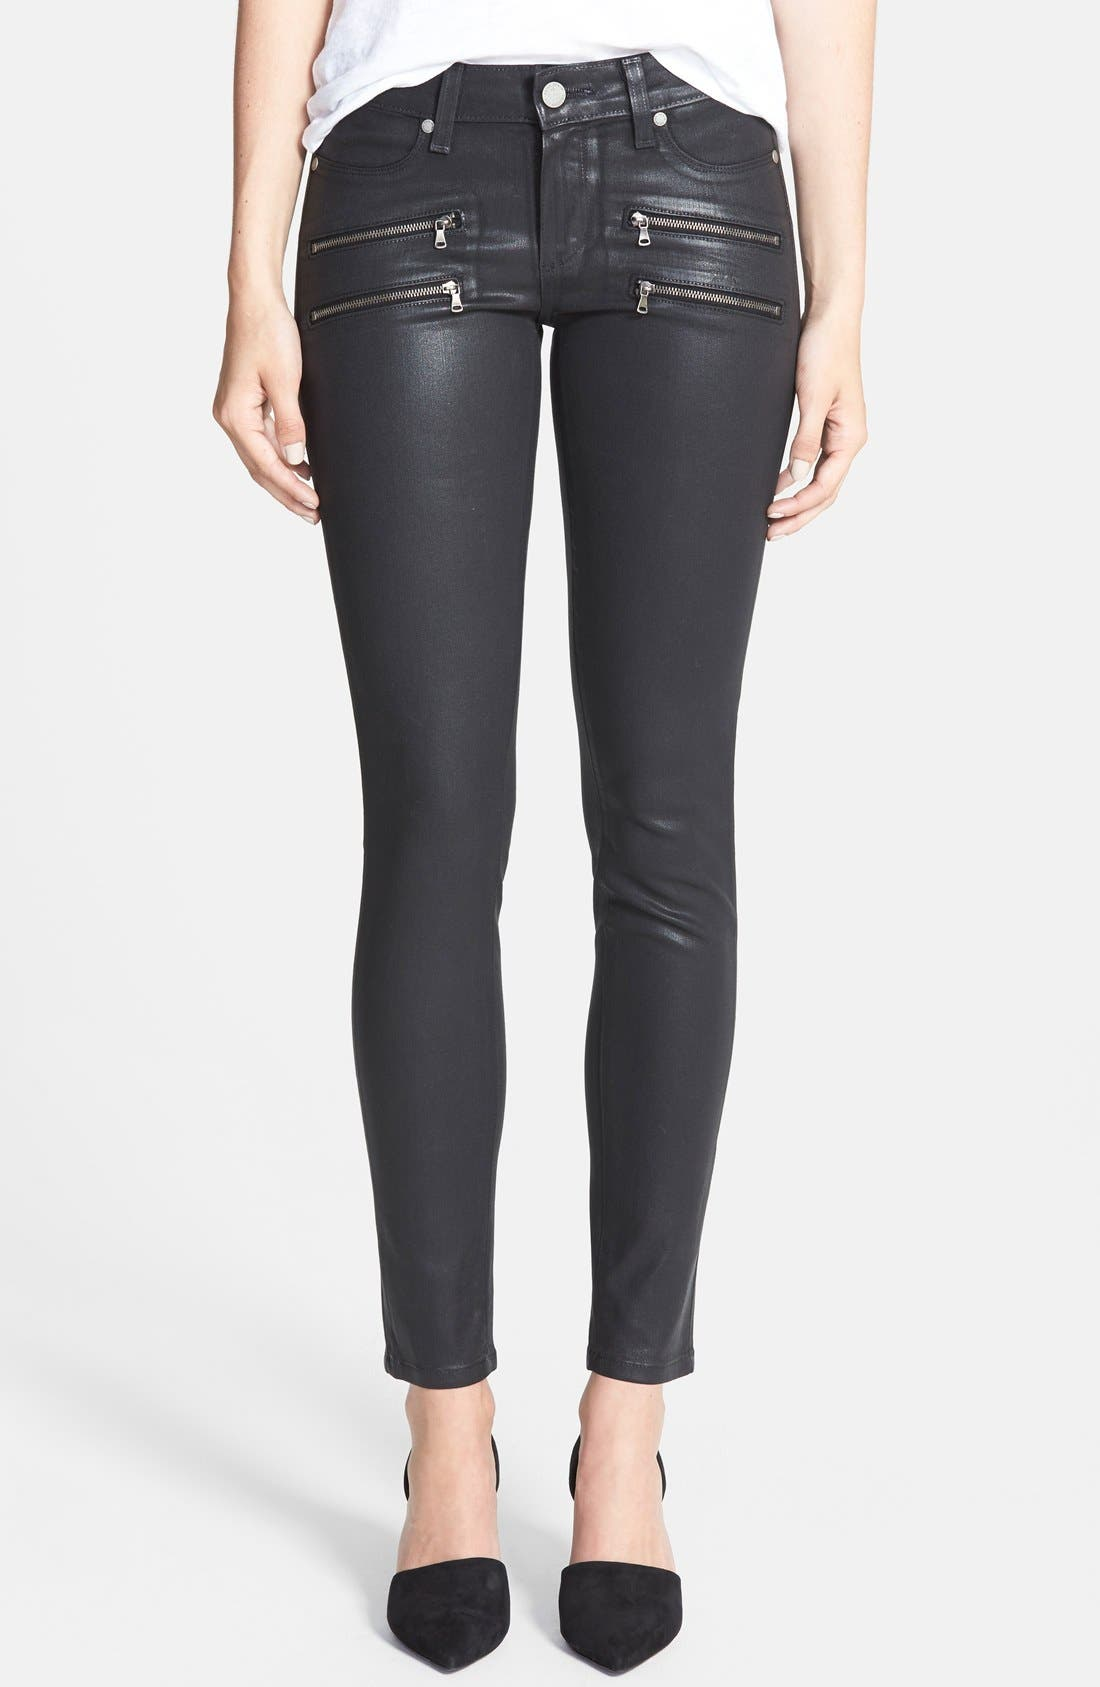 'Edgemont' Coated Ultra Skinny Jeans,                             Main thumbnail 1, color,                             Black Silk